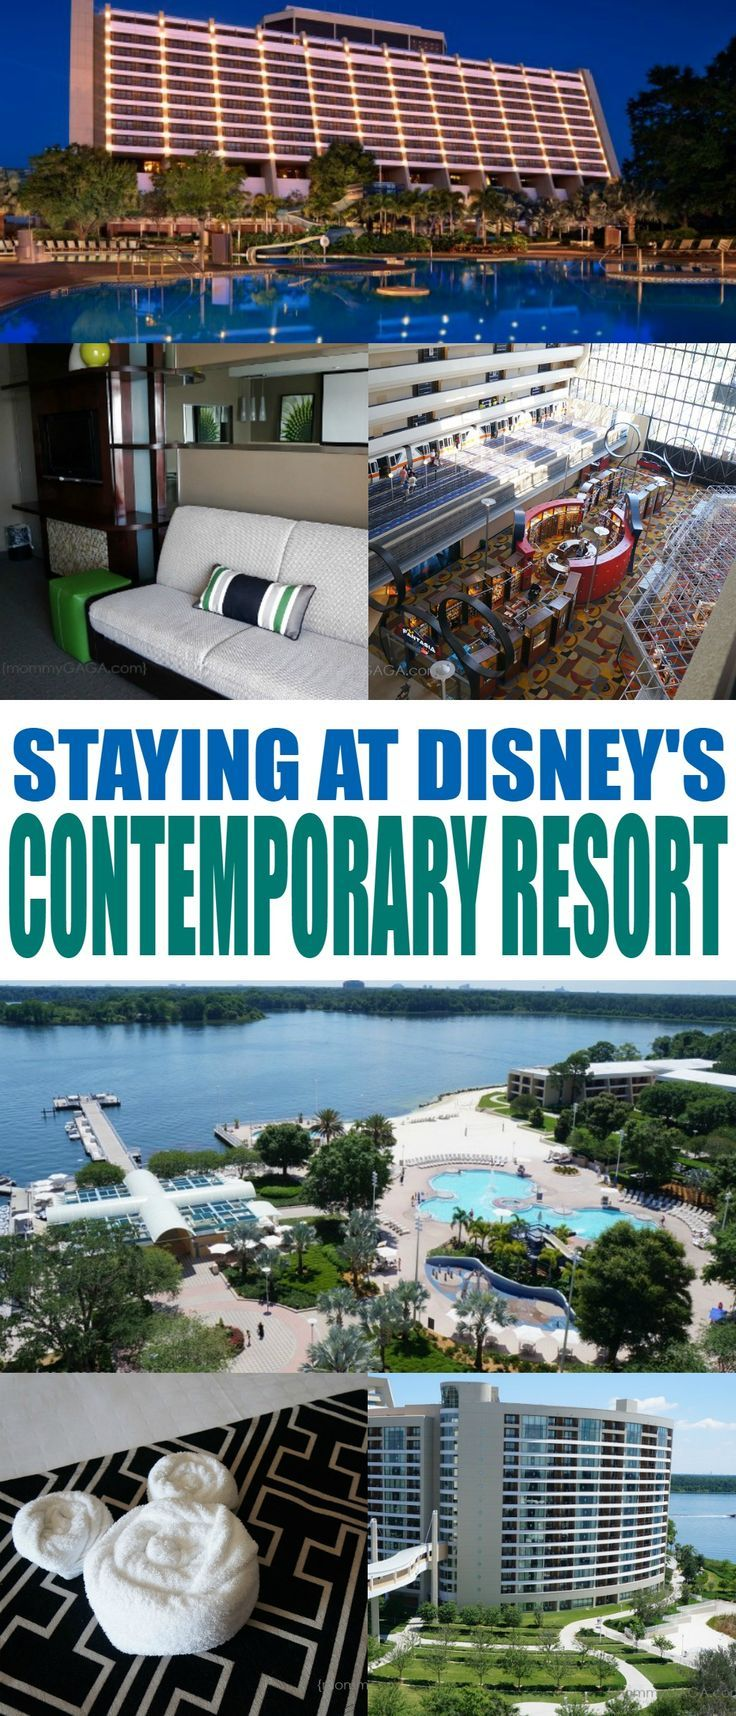 Stay At The Walt Disney World Contemporary Resort- You'll Love The Extra Magic!